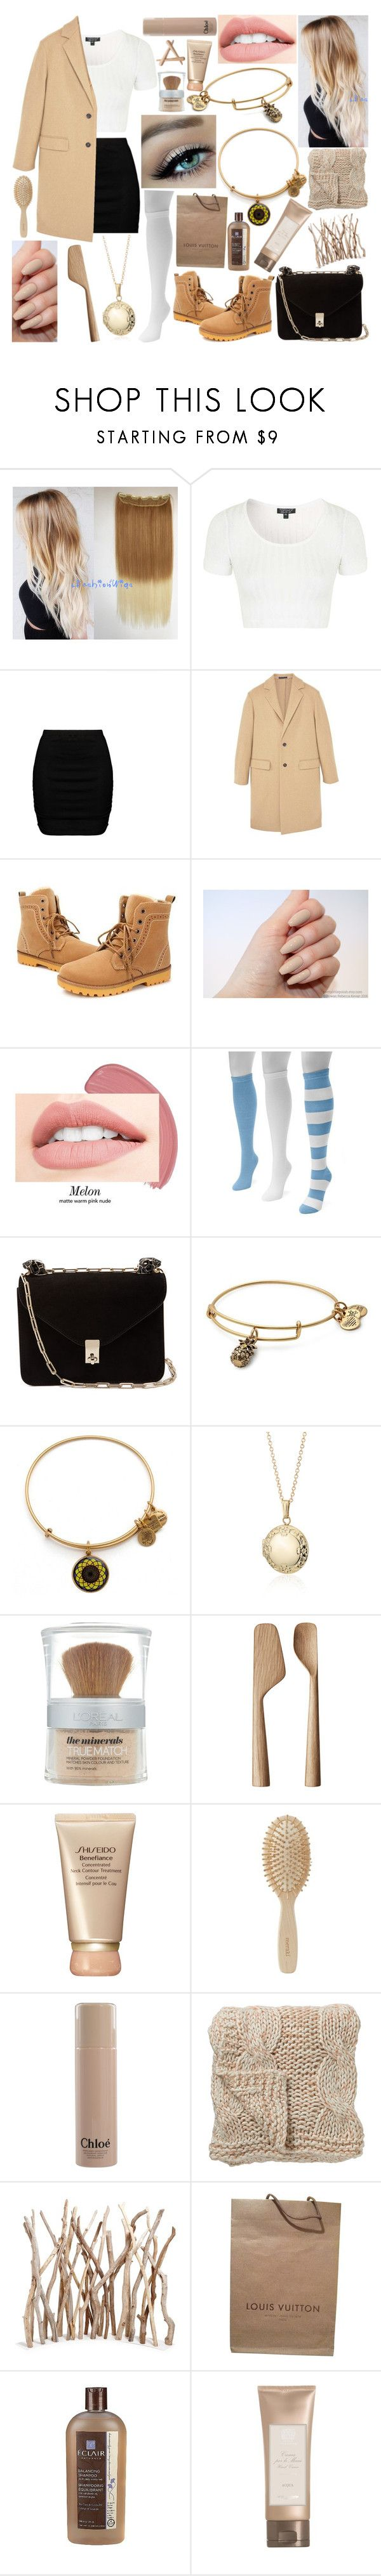 """#30🎶"" by kenziebandgeek ❤ liked on Polyvore featuring Topshop, Zizzi, MANGO, Muk Luks, Valentino, Alex and Ani, Blue Nile, L'Oréal Paris, Georg Jensen and Shiseido"